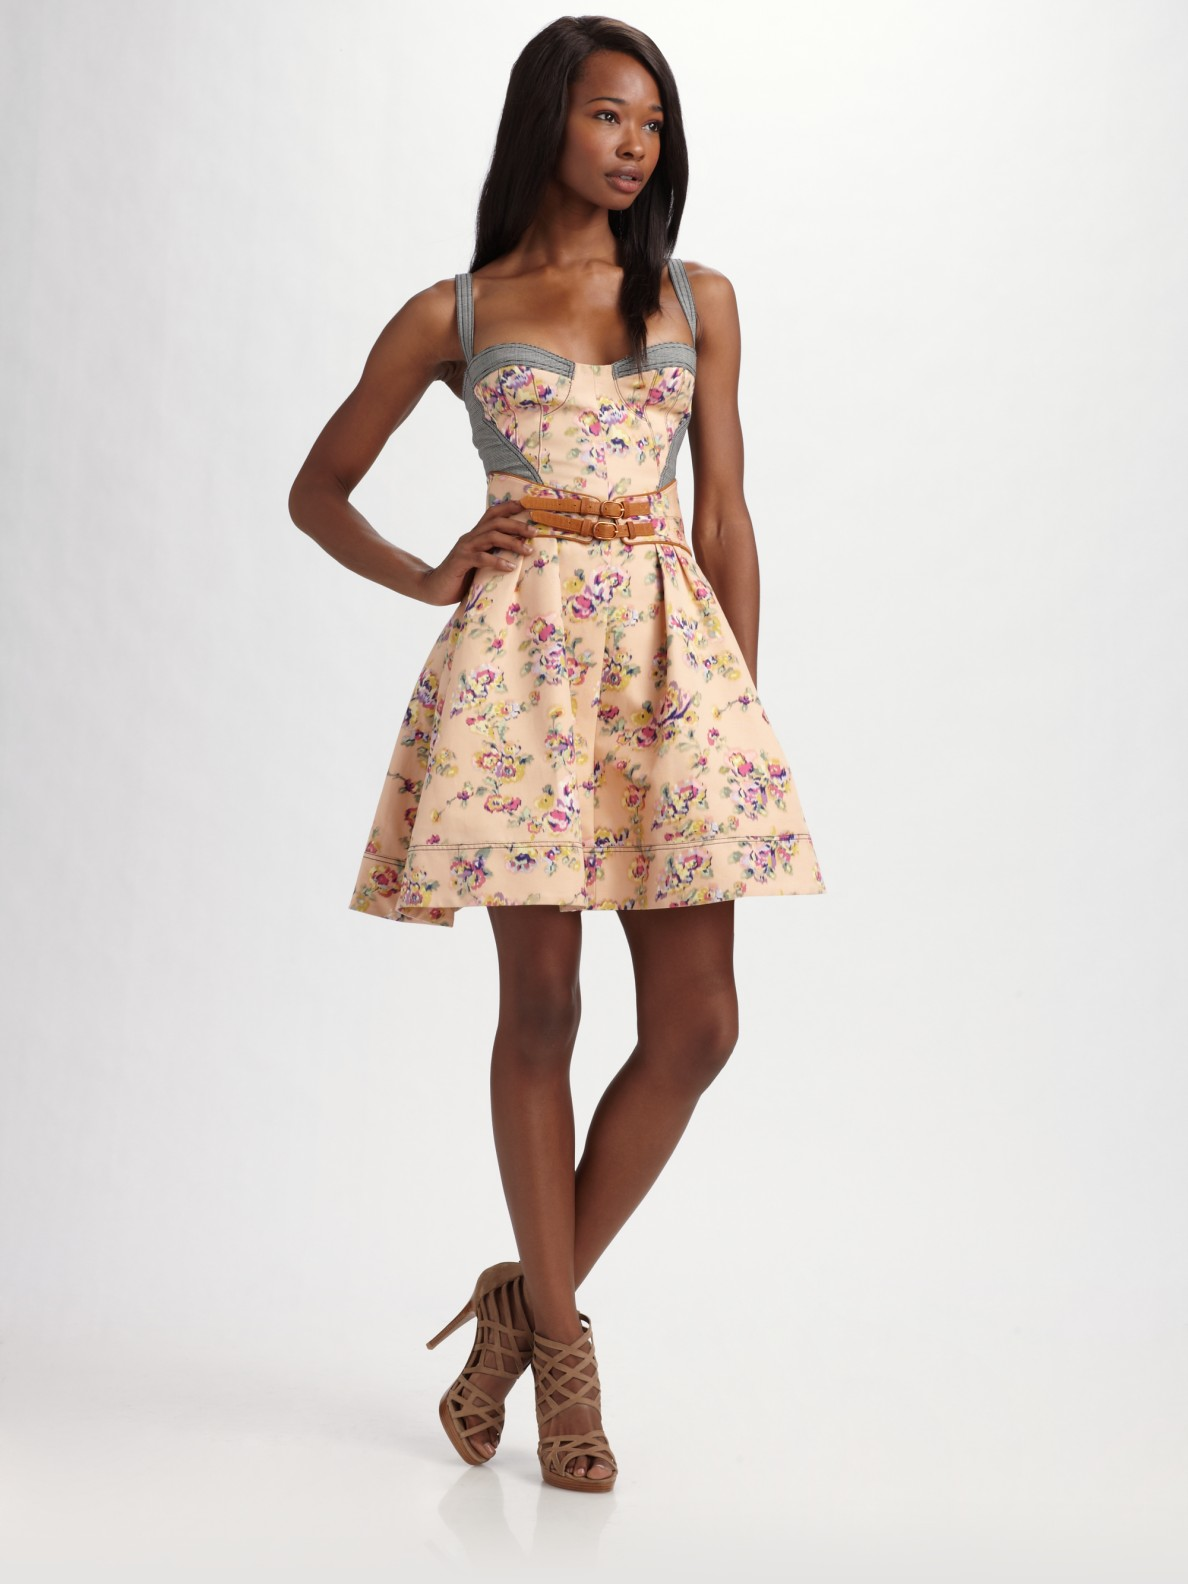 Discount Visit New Outlet Really Zac Posen Floral Print Silk Dress From China Online VCw21Rd